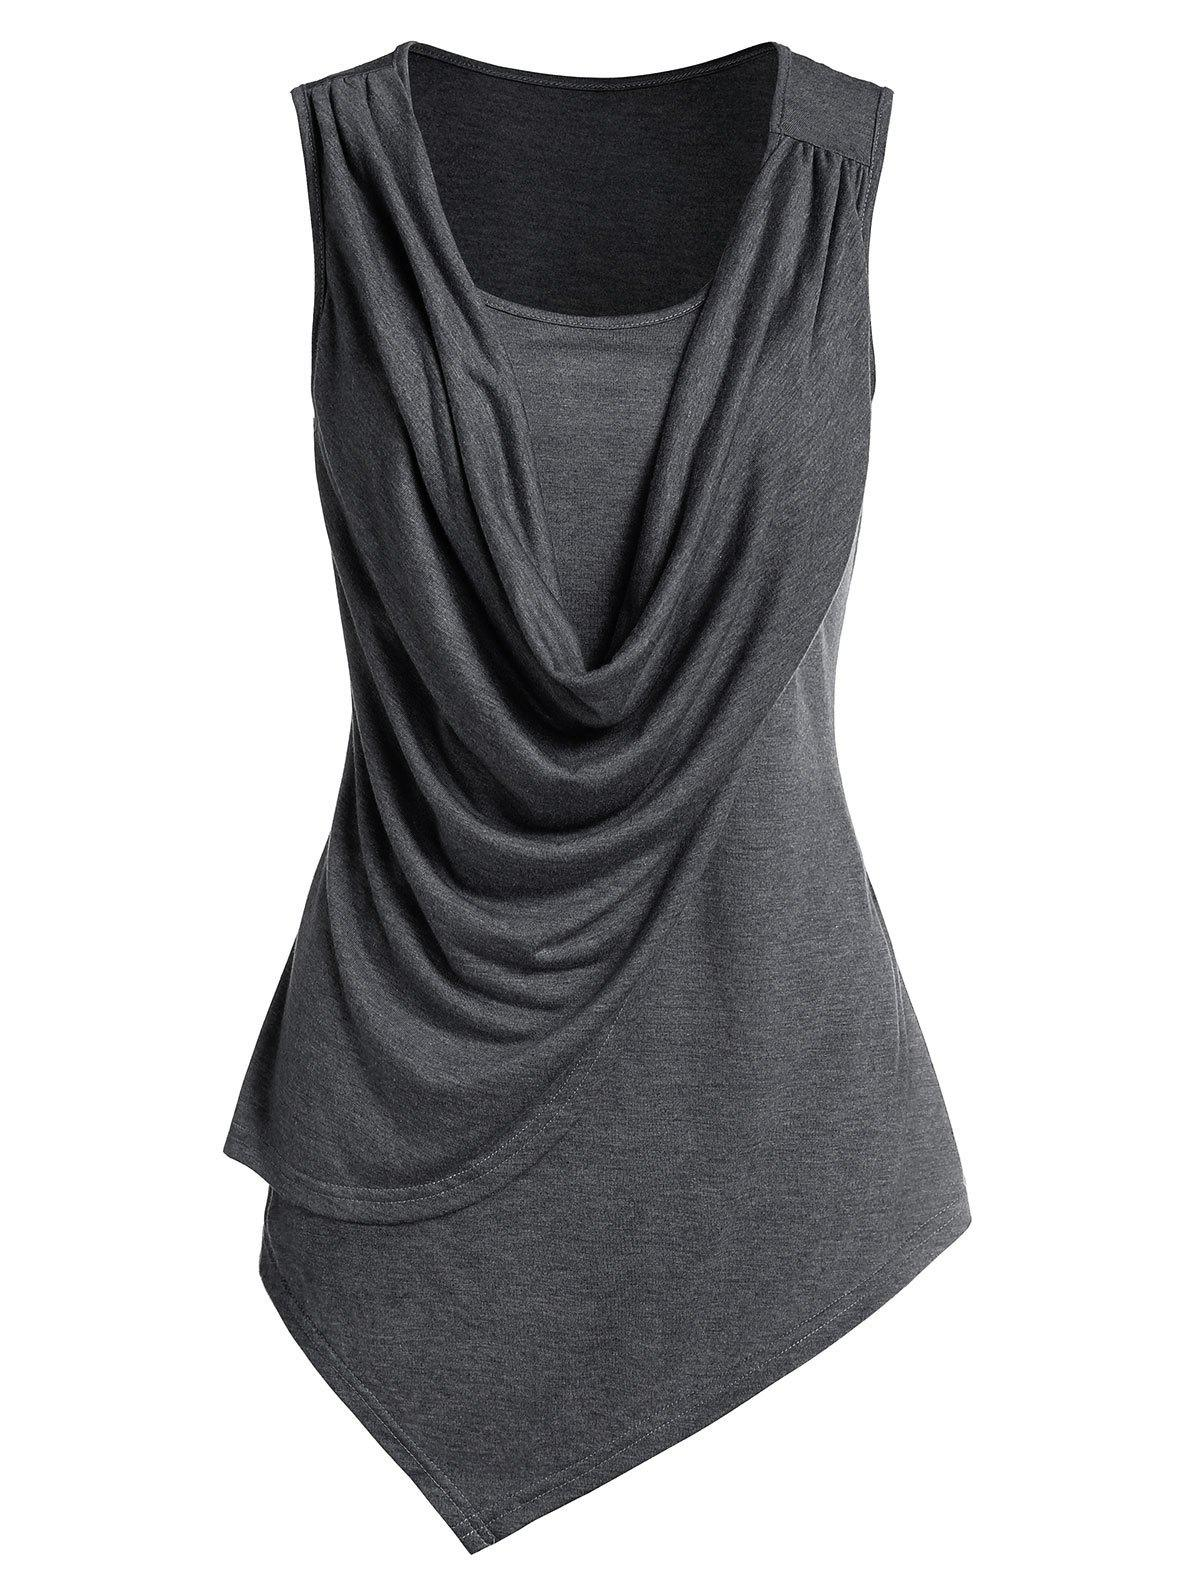 Asymmetric Draped Overlap Tank Top - ASH GRAY 3XL